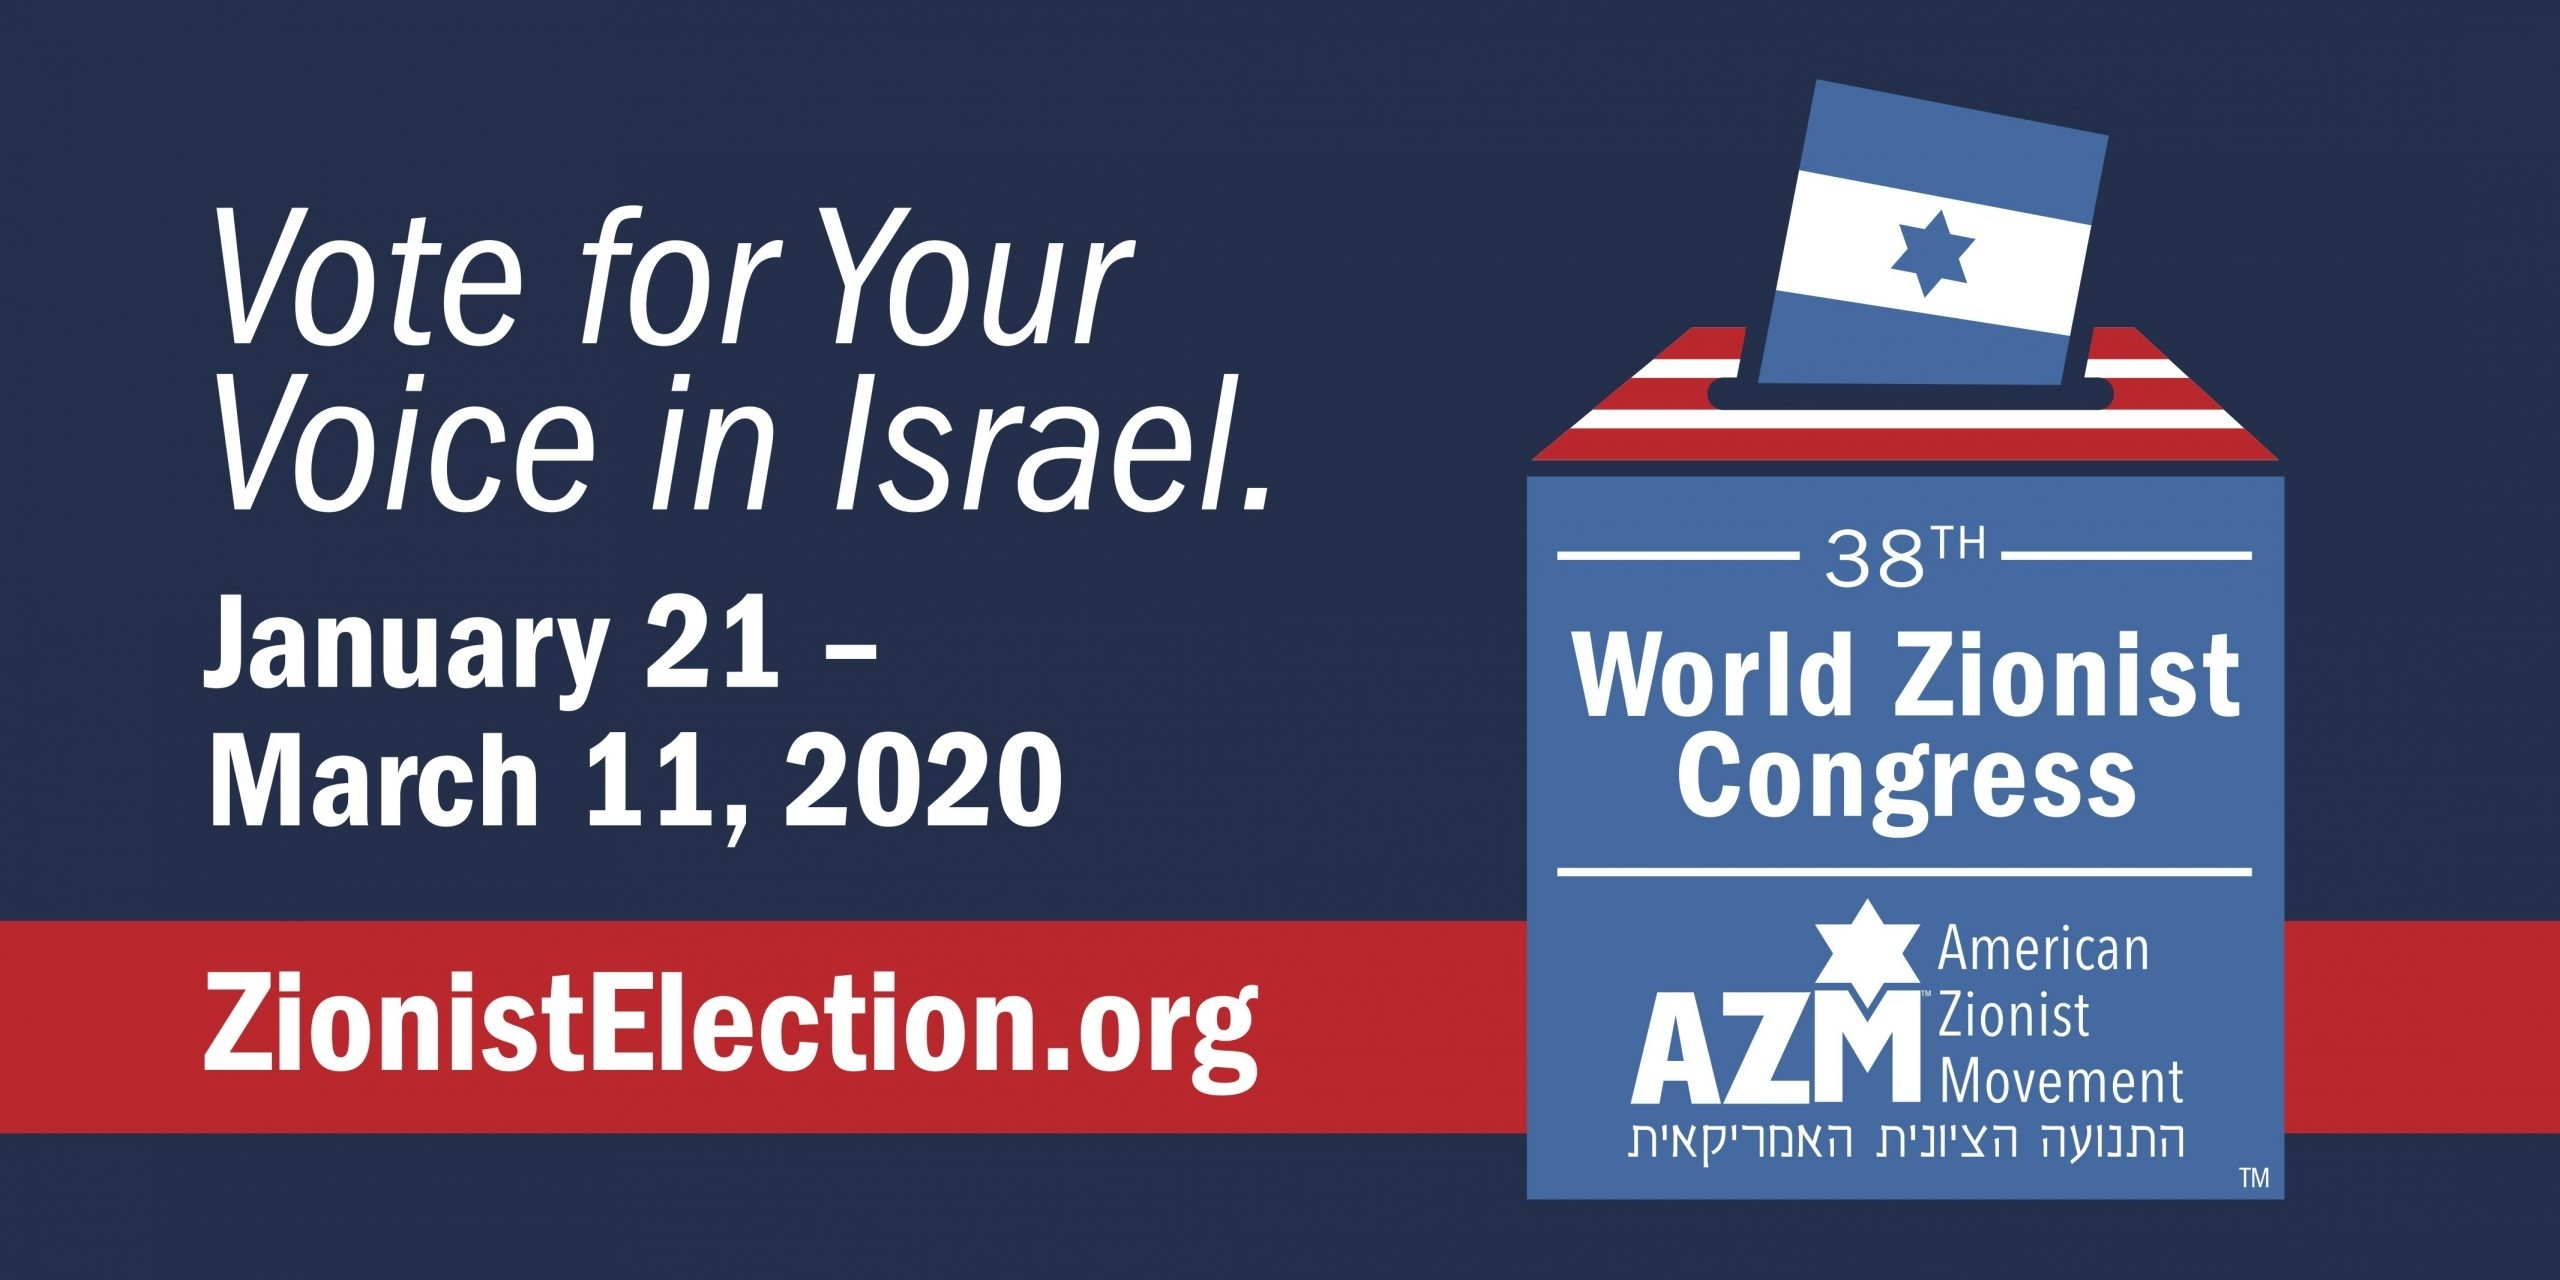 38Th World Zionist Congress Elections   American Zionist Exceptional When The Jewish Federation Of Chicago Will Be Close For Holidays In 2020